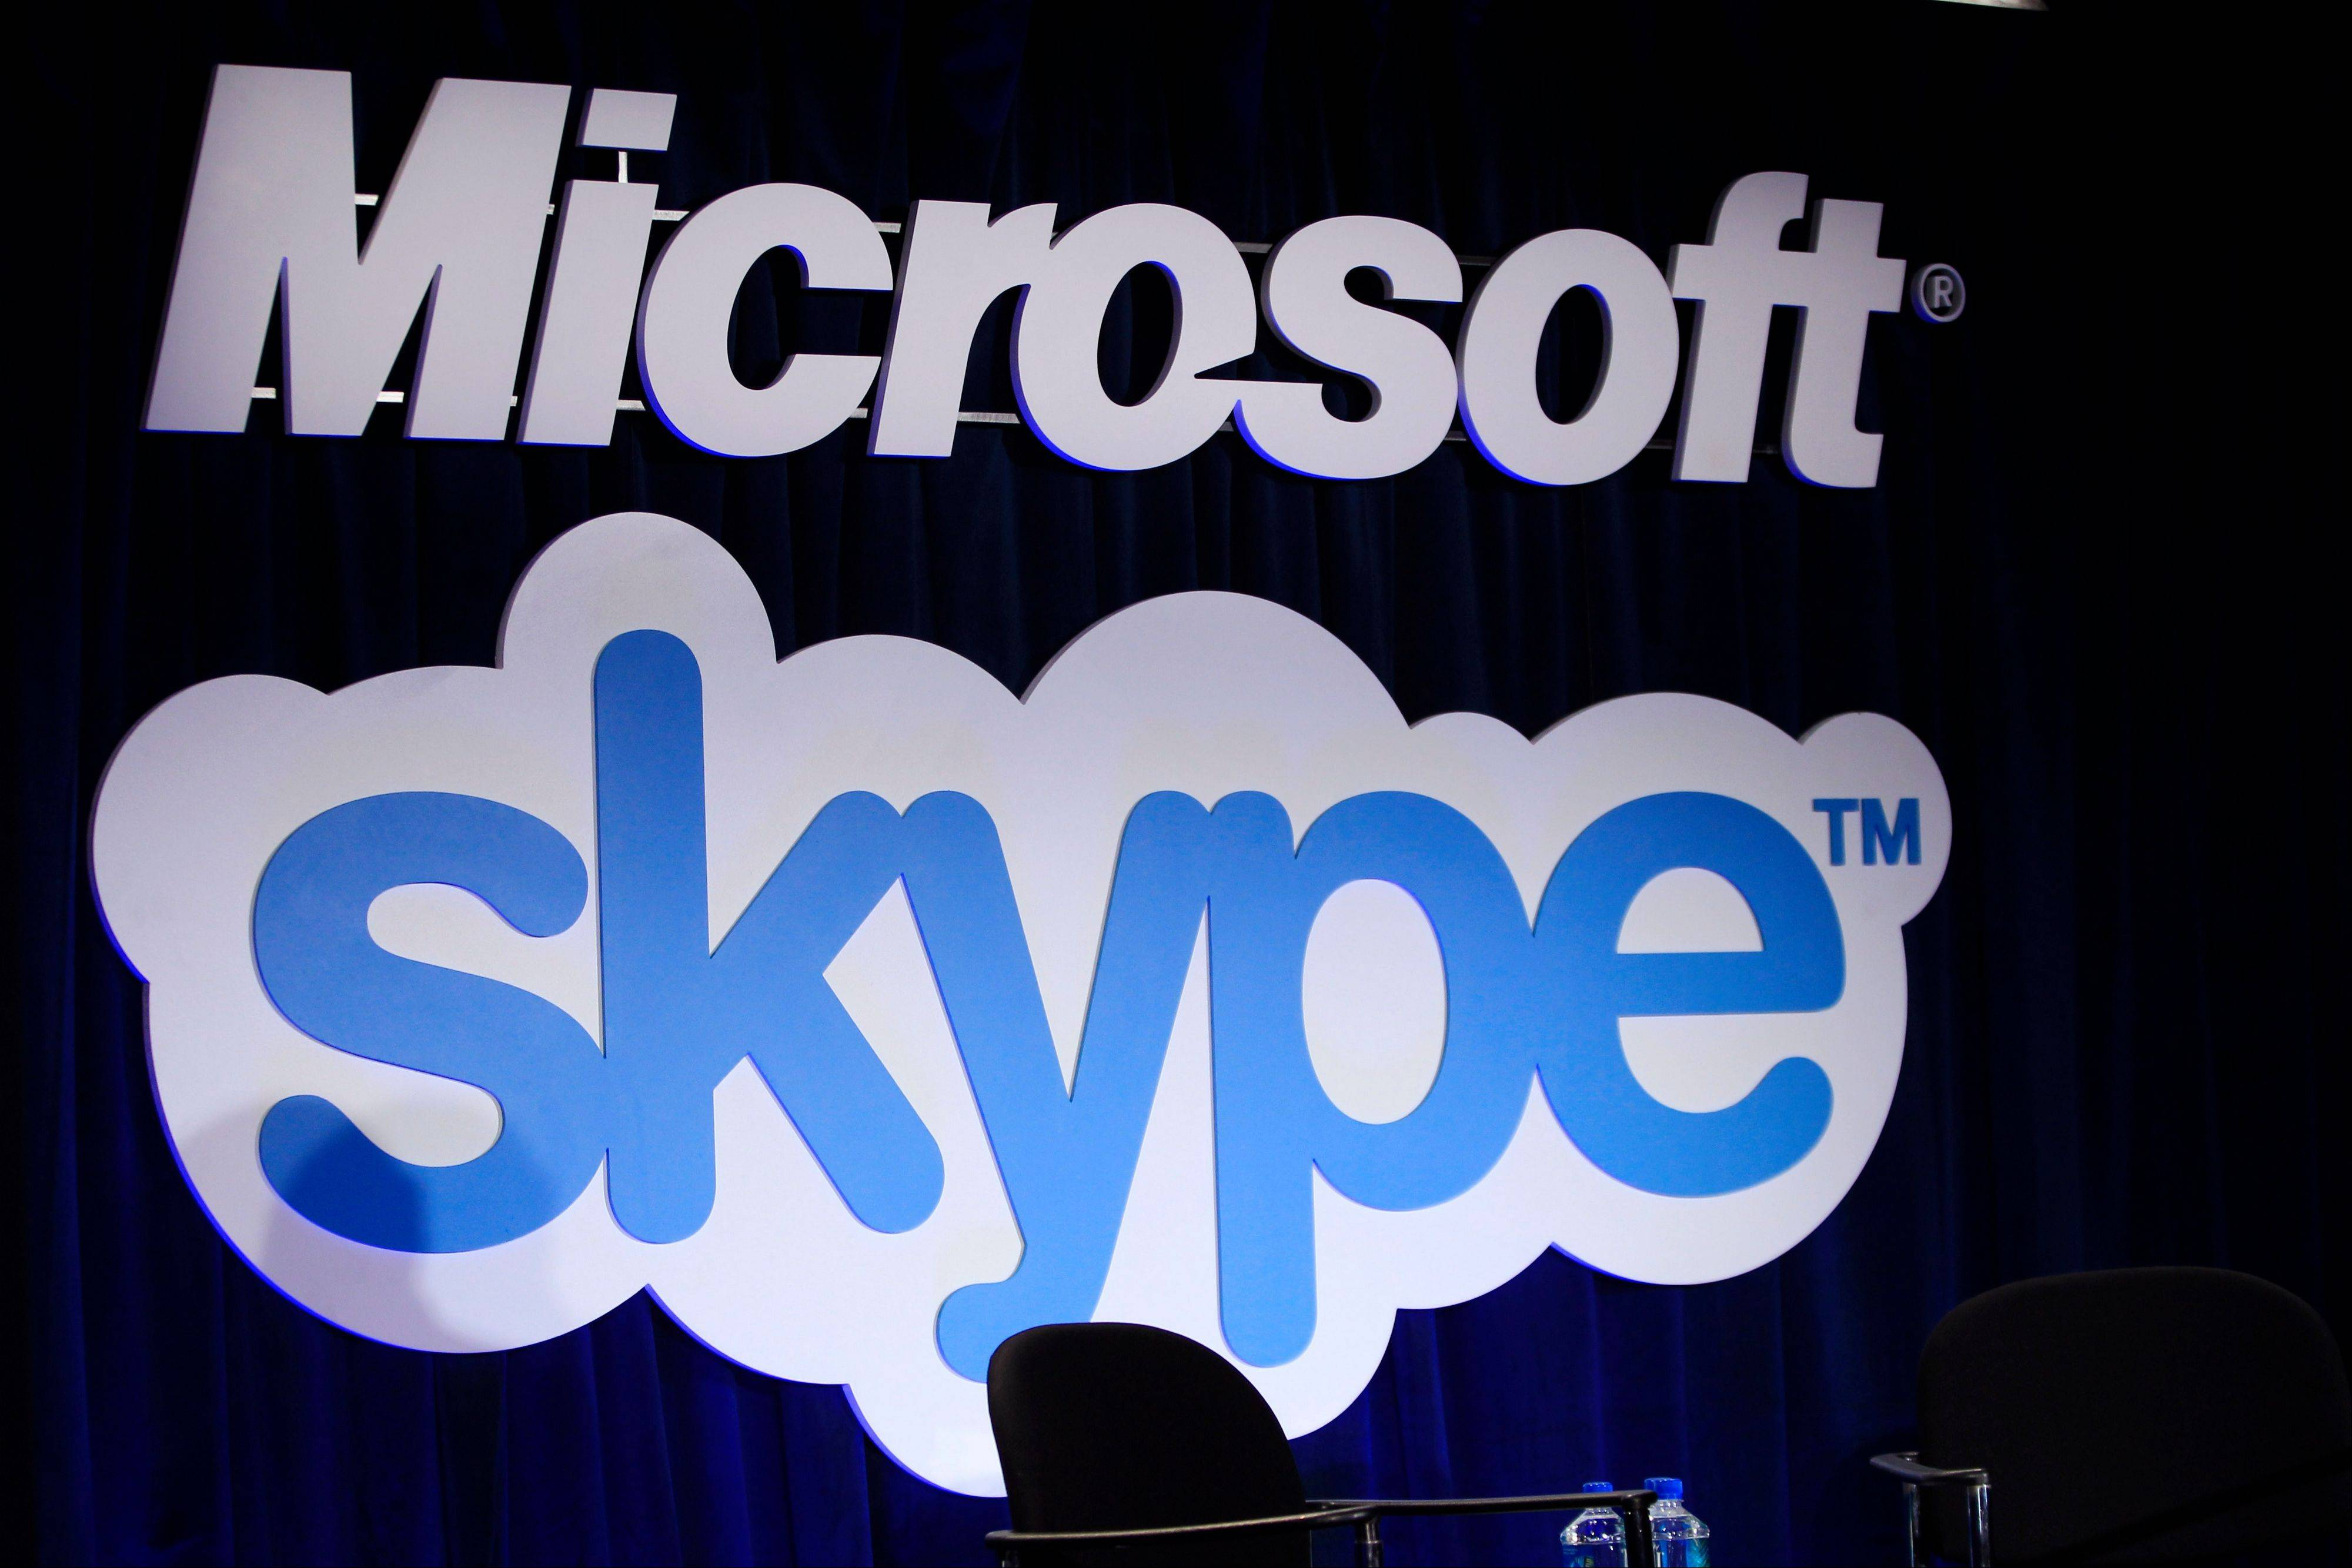 A Microsoft and Skype sign are displayed at a news conference in San Francisco.